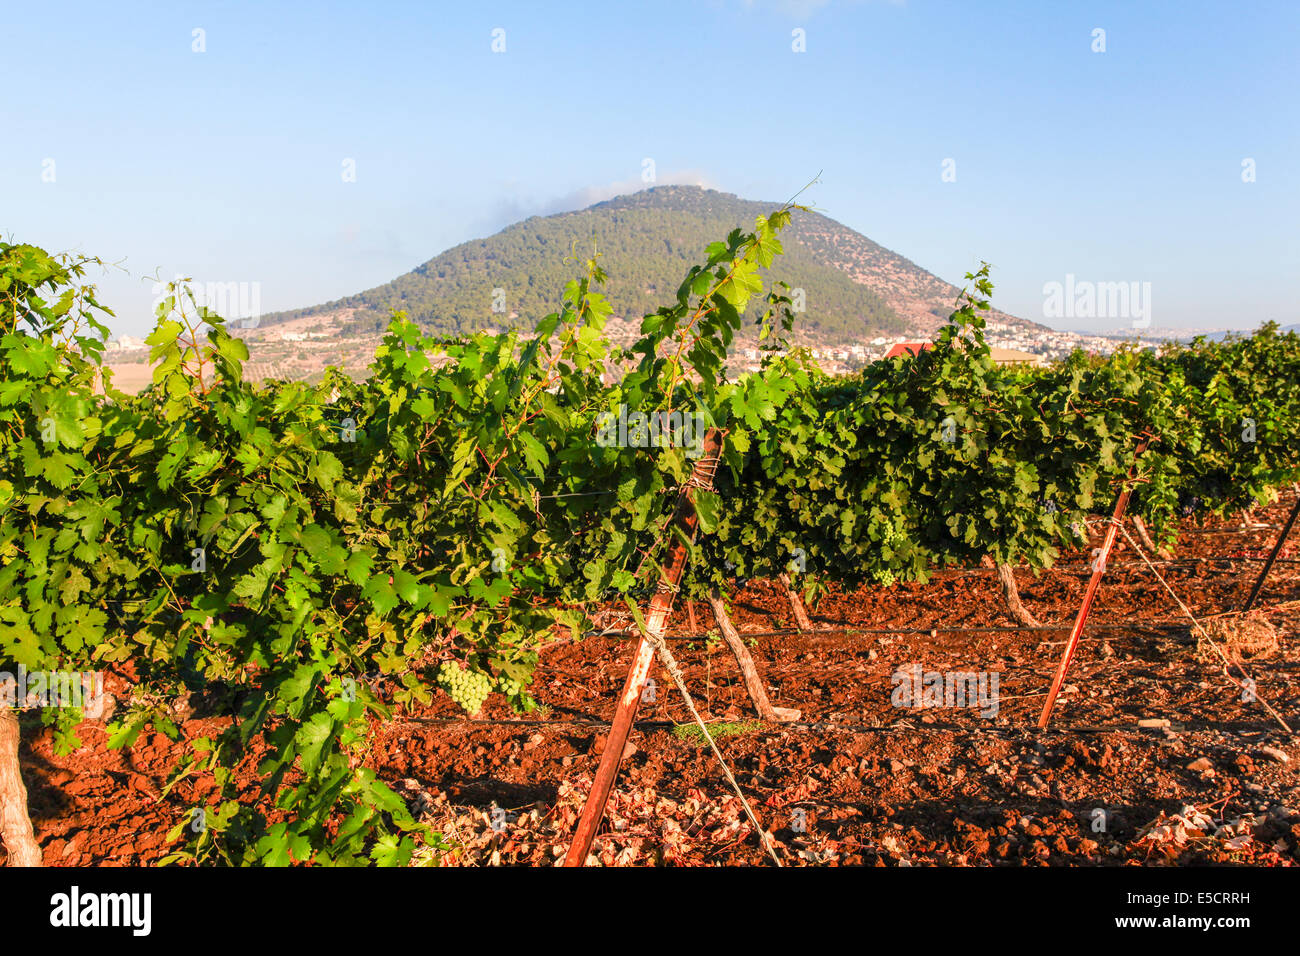 Mount Tabor is located in Lower Galilee, Israel, at the eastern end of the Jezreel Valley - Stock Image